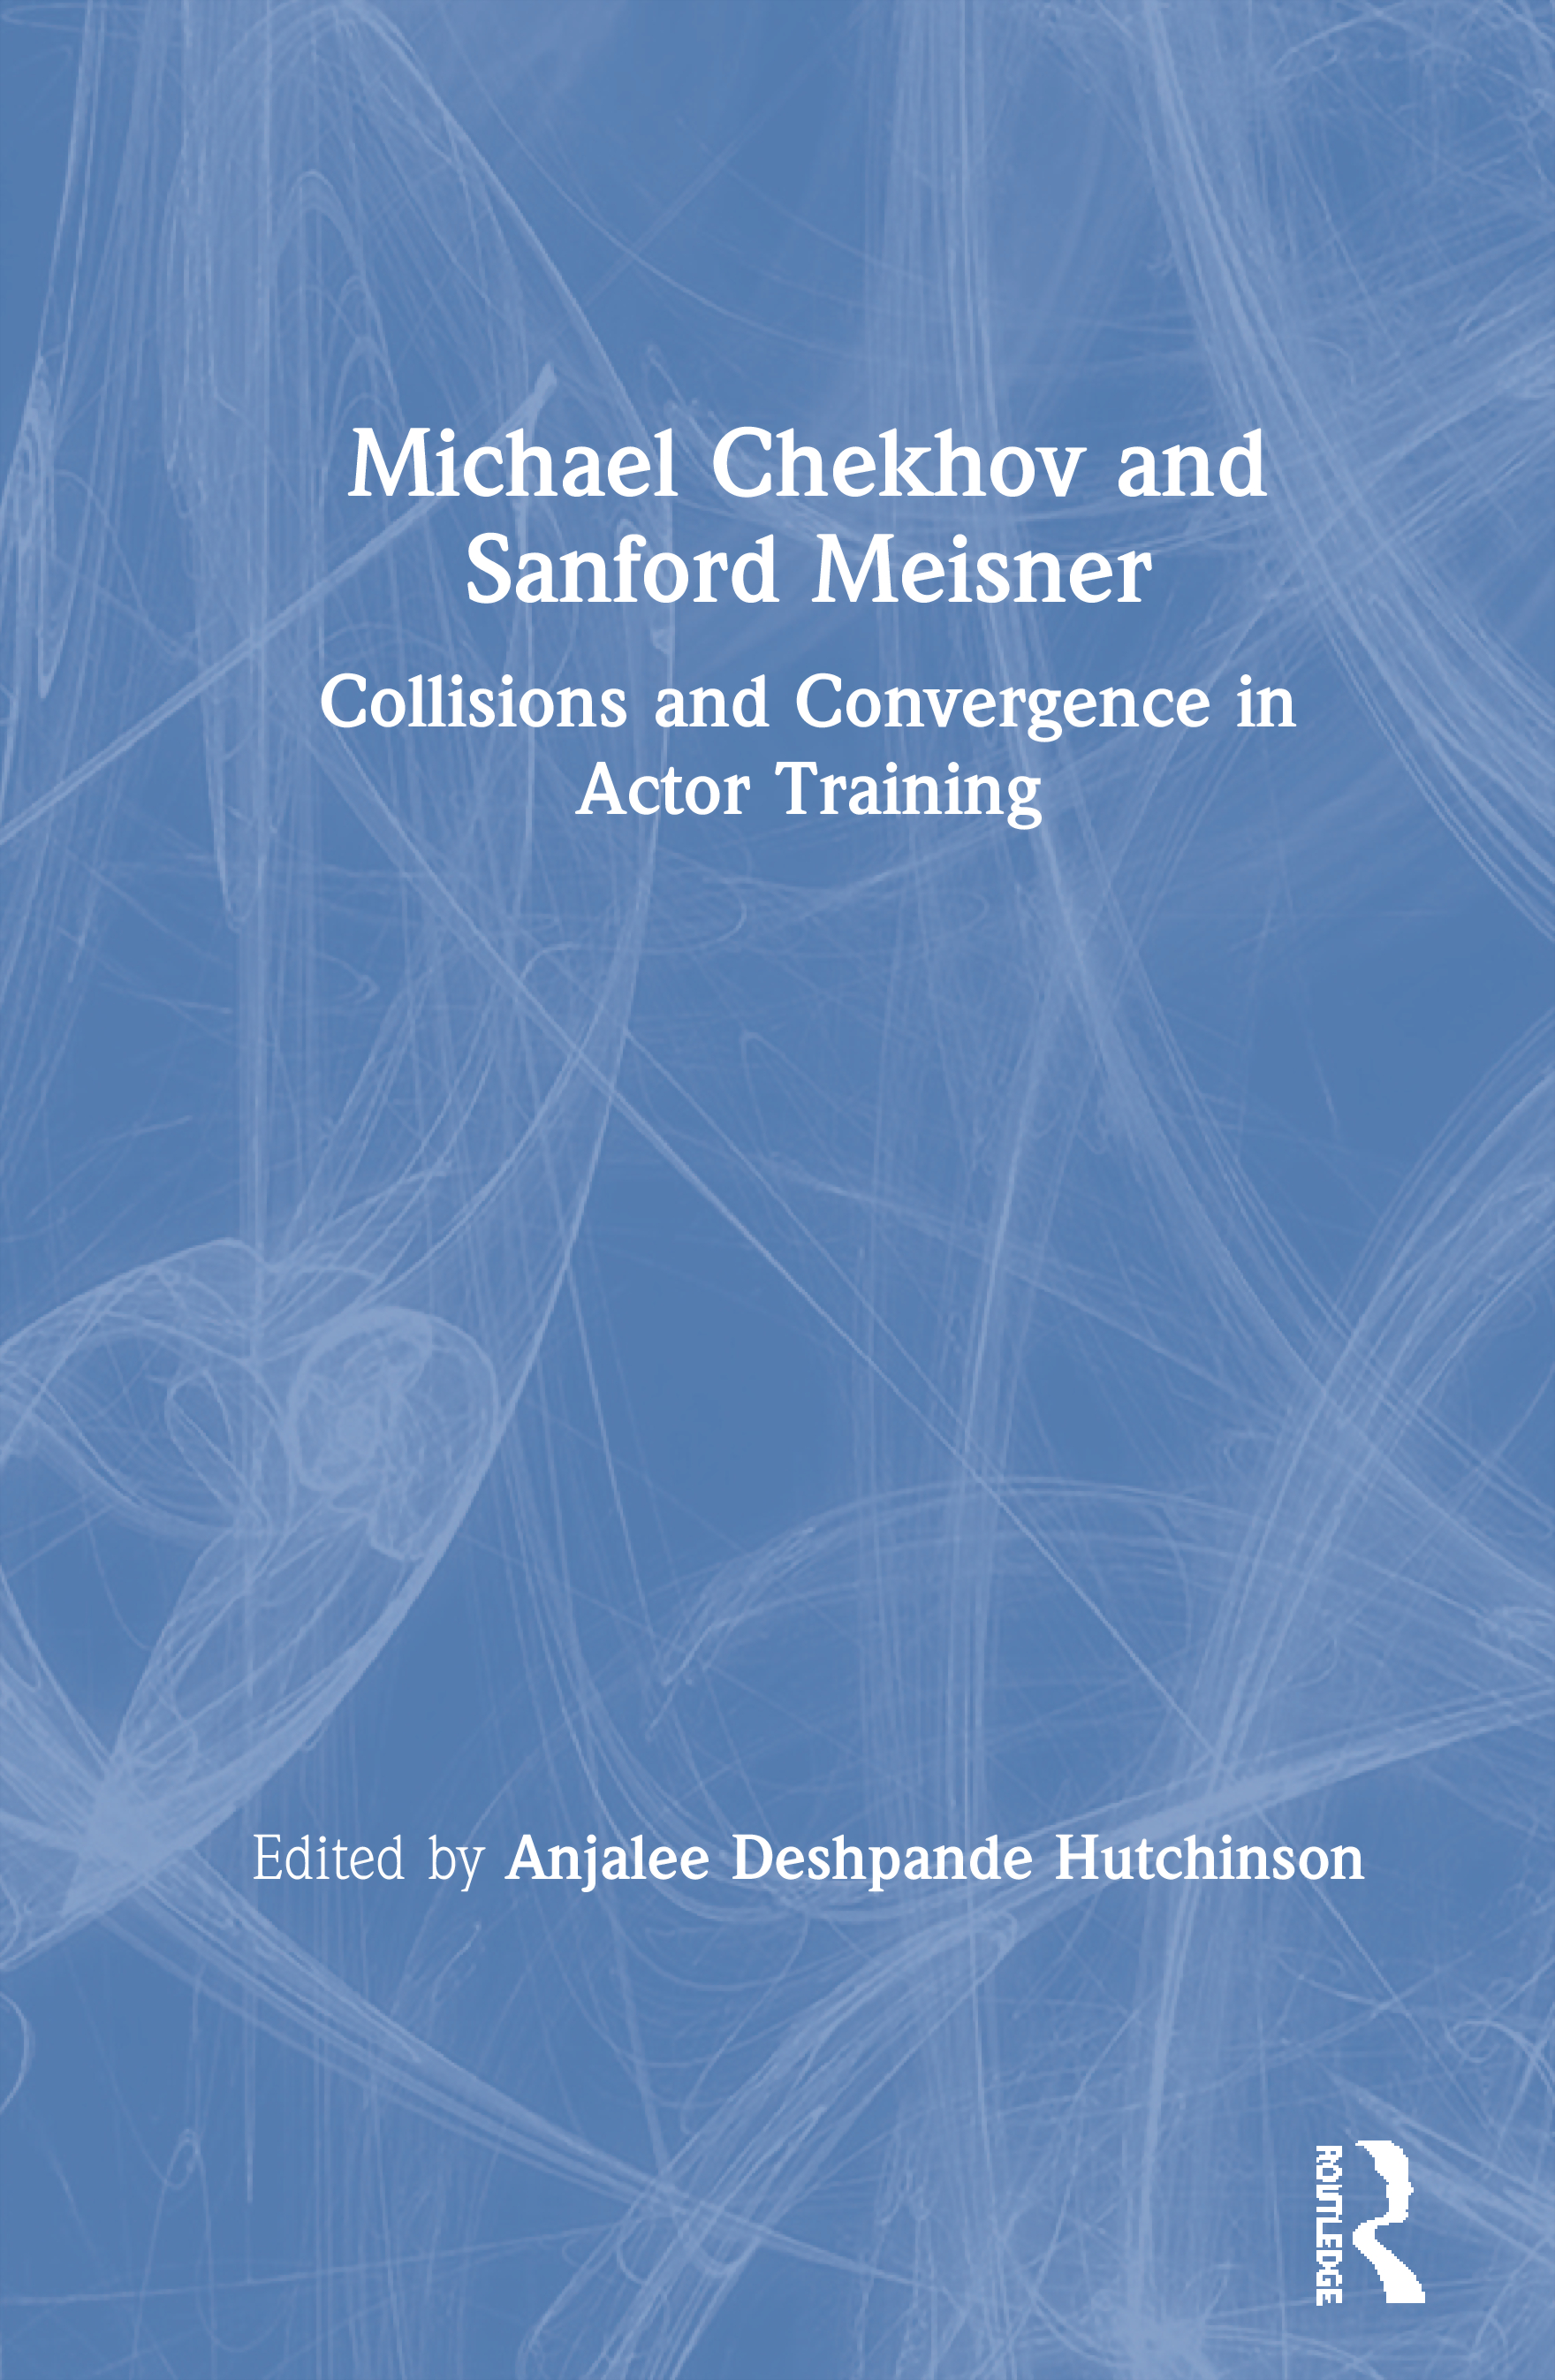 Michael Chekhov and Sanford Meisner: Collisions and Convergence in Actor Training, 1st Edition (Paperback) book cover